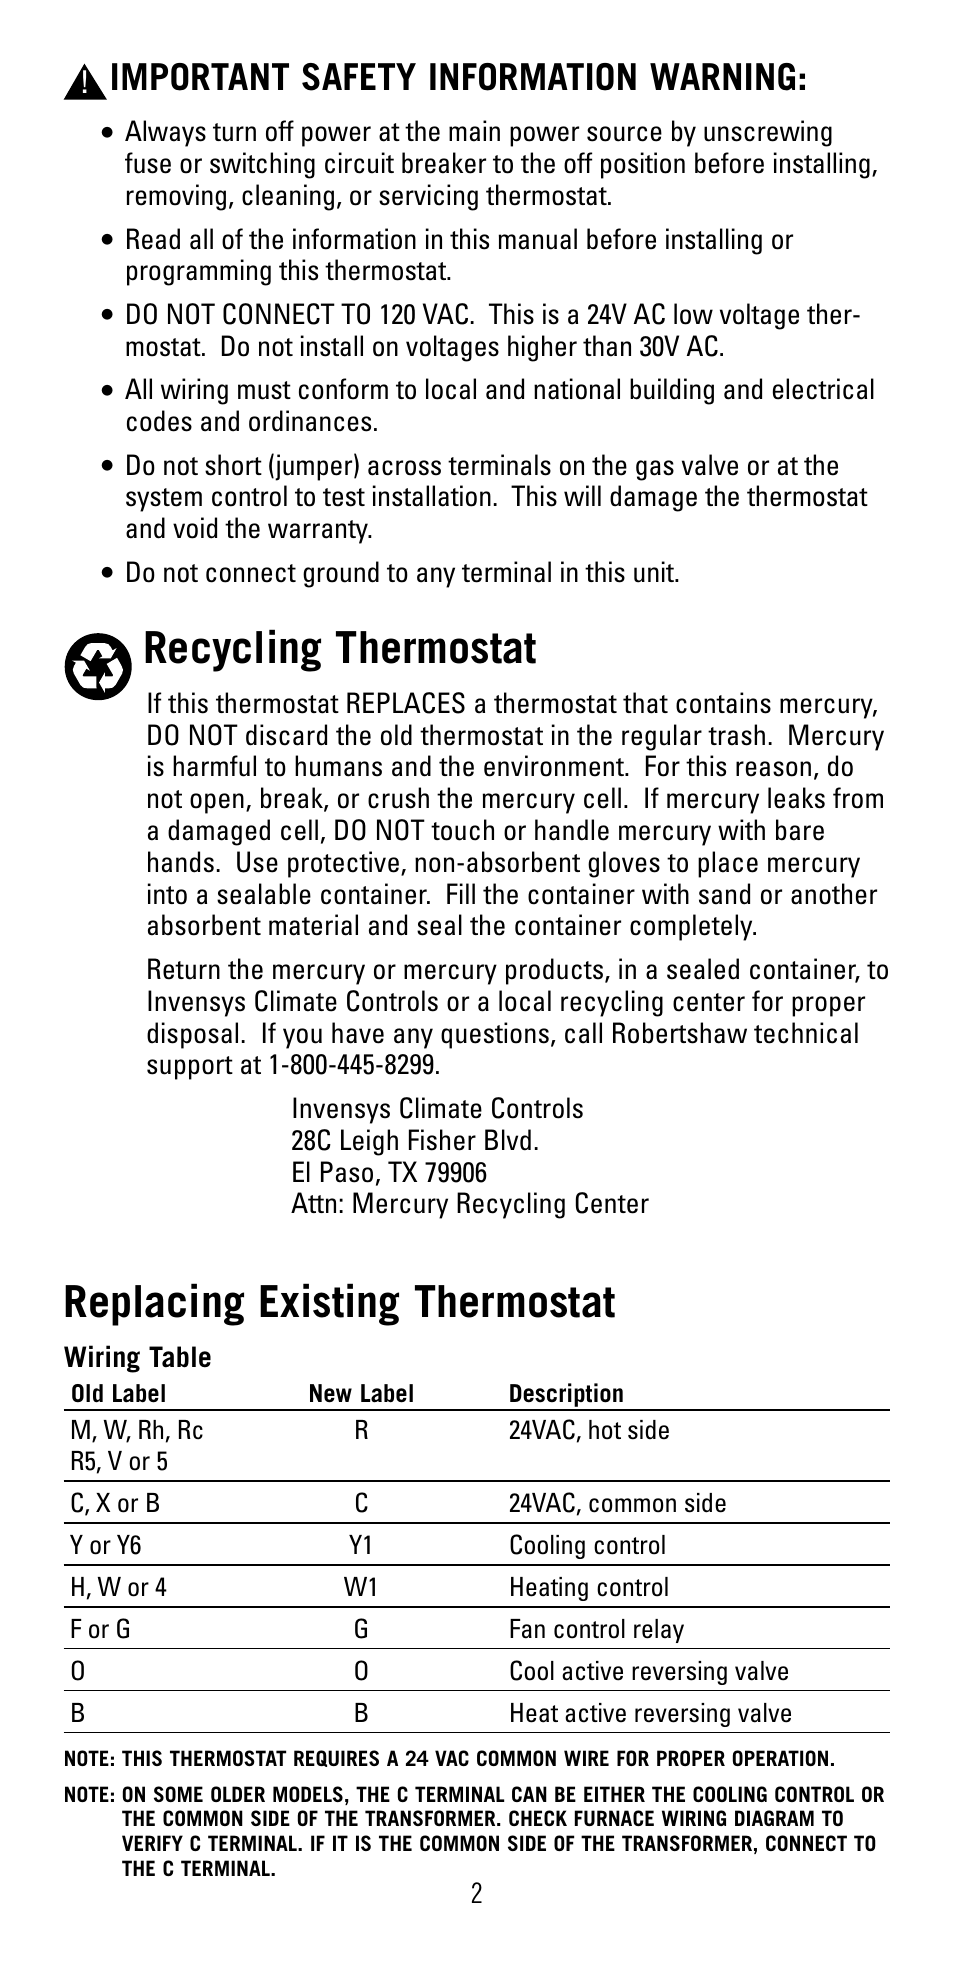 Recycling Thermostat  Replacing Existing Thermostat  Important Safety Information Warning